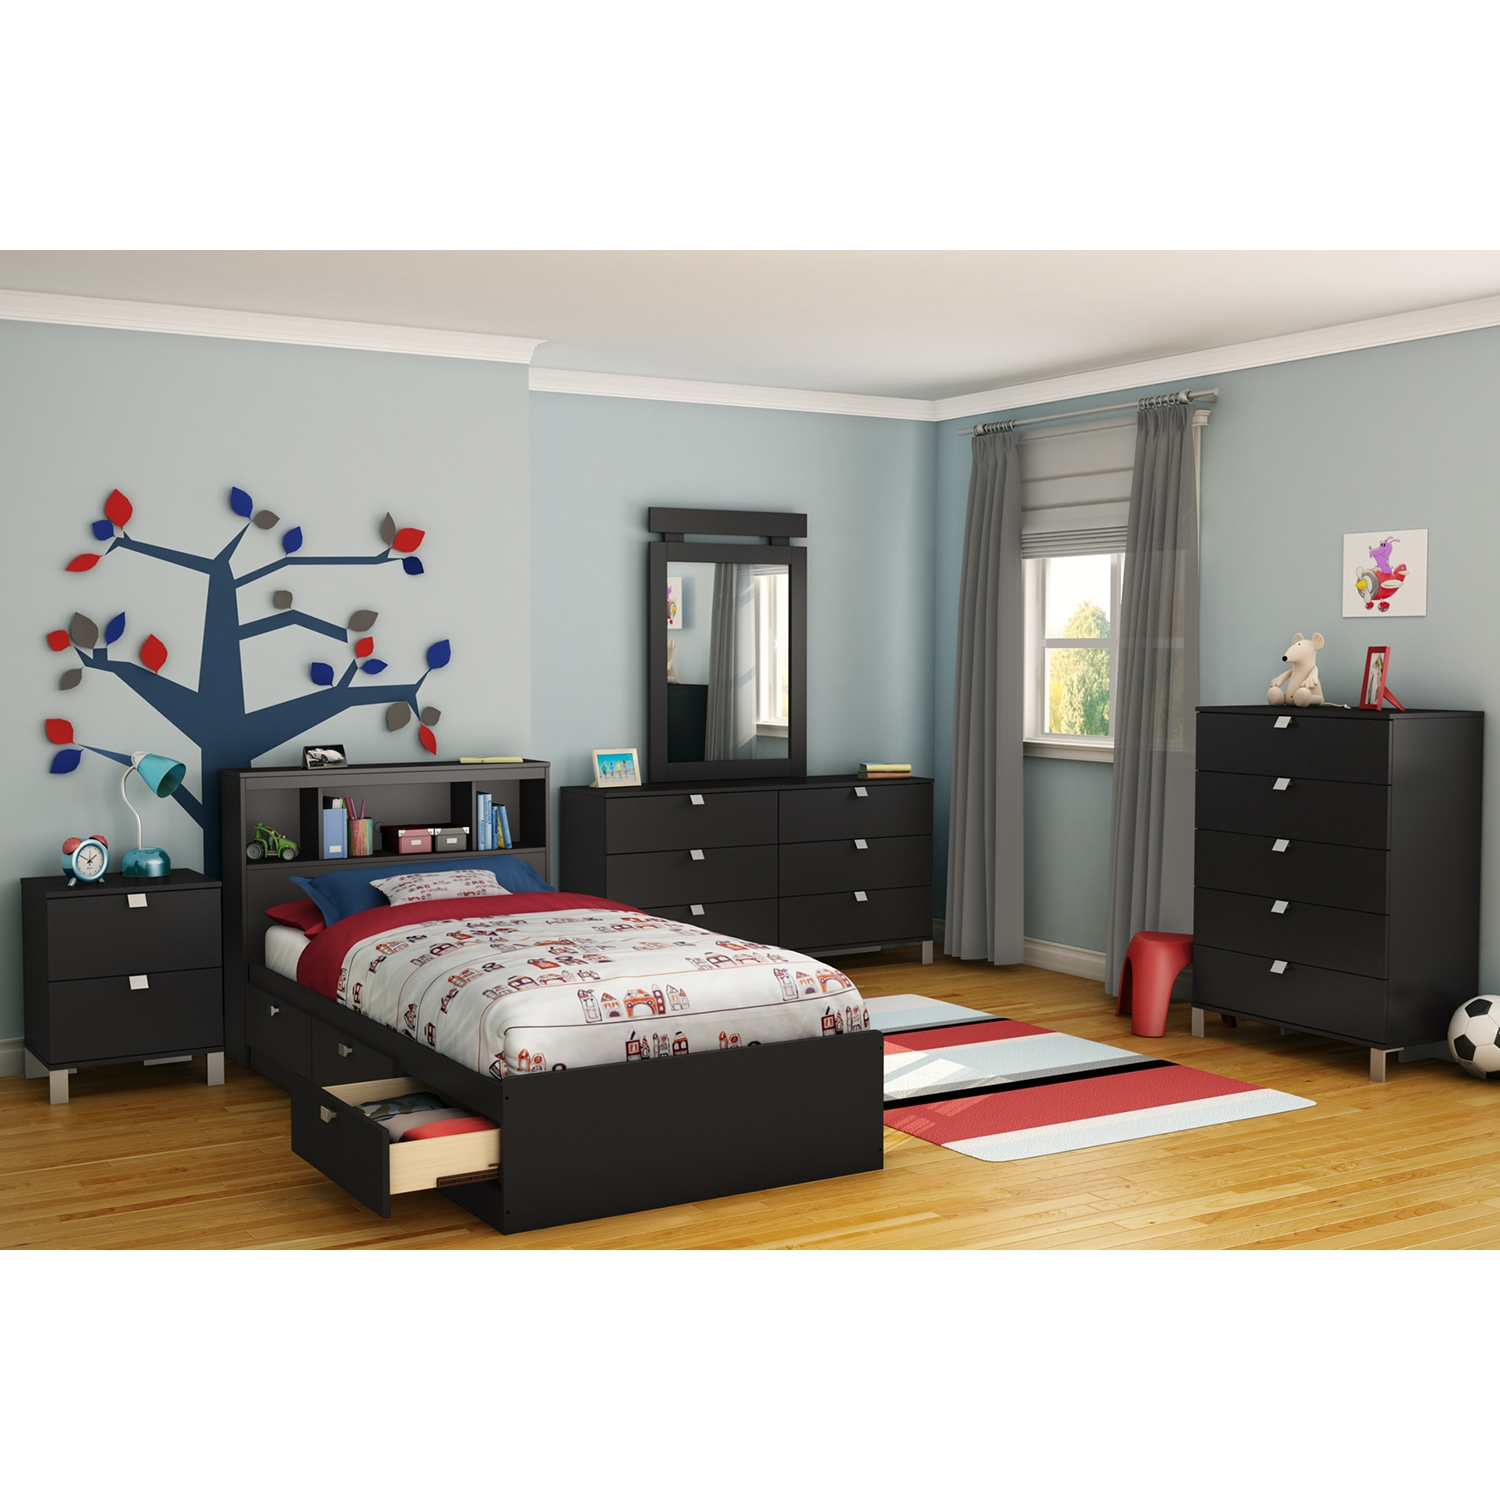 Spark Twin Mates Bed - 3 Drawers, Bookcase Headboard, Pure Black - SS-10049